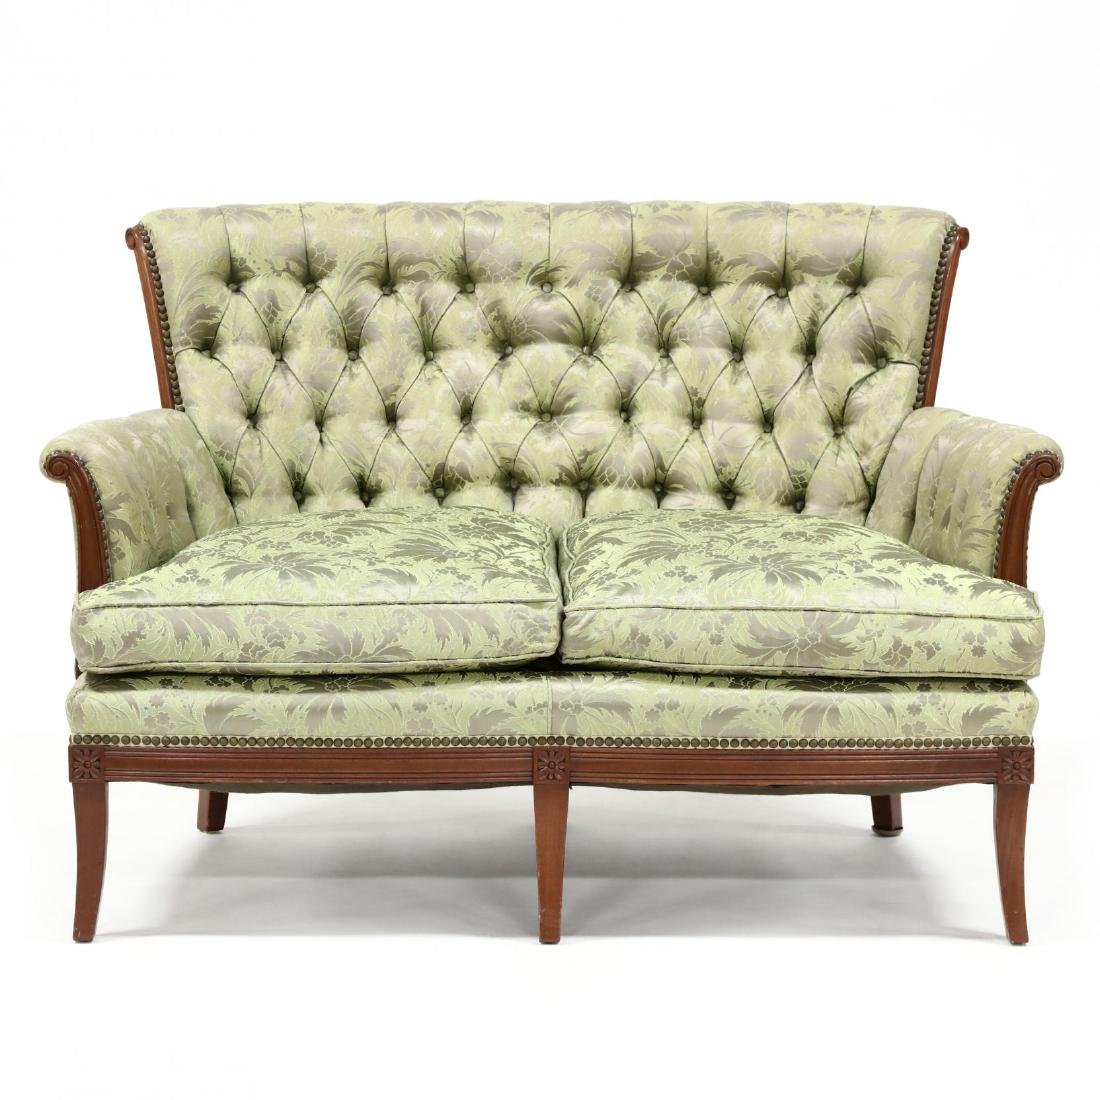 Brandt, French Provincial Style Settee